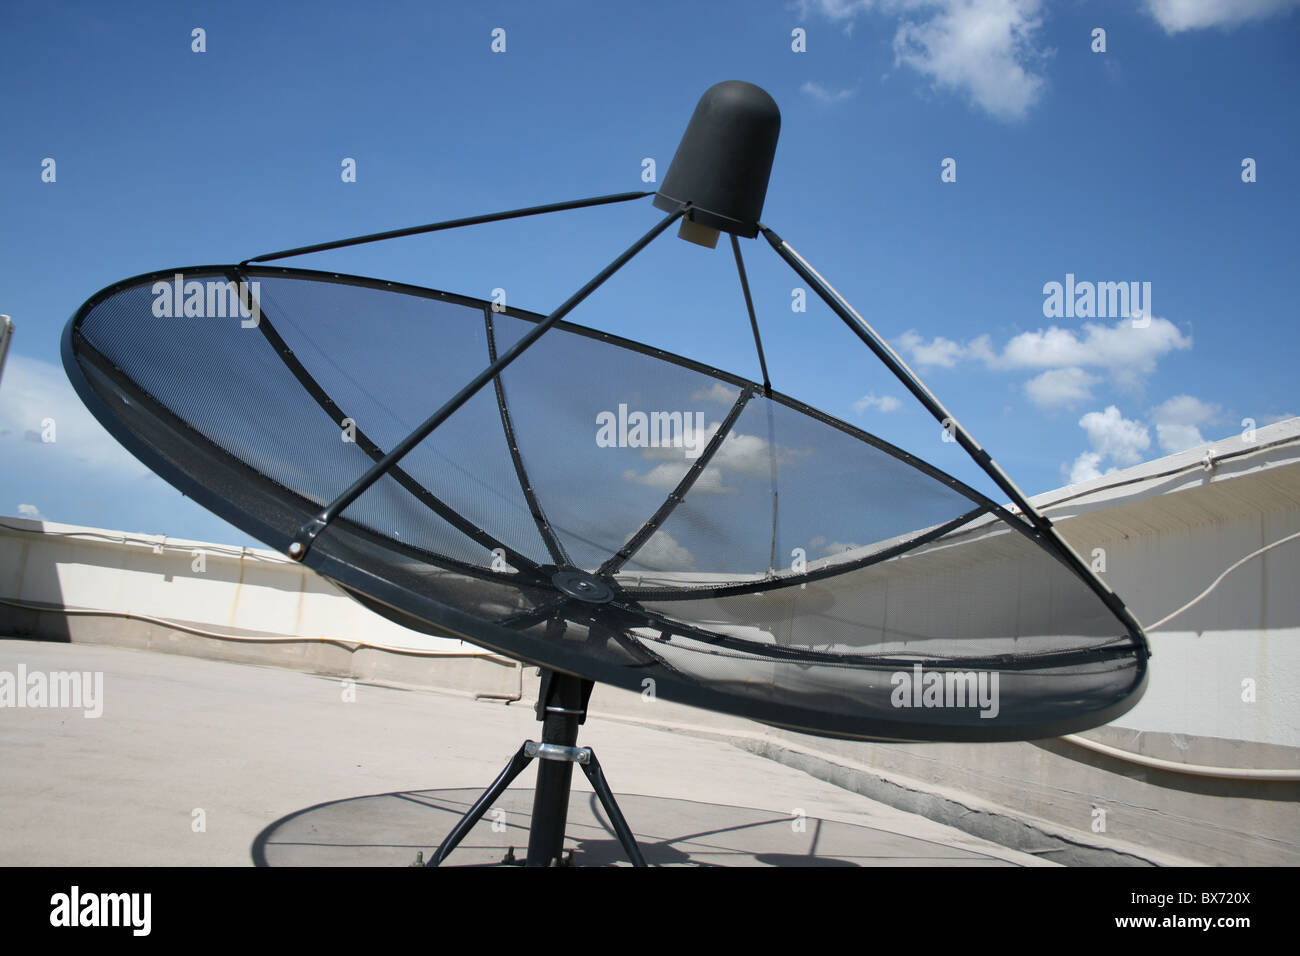 Satellite dish outdoors in Thailand. - Stock Image